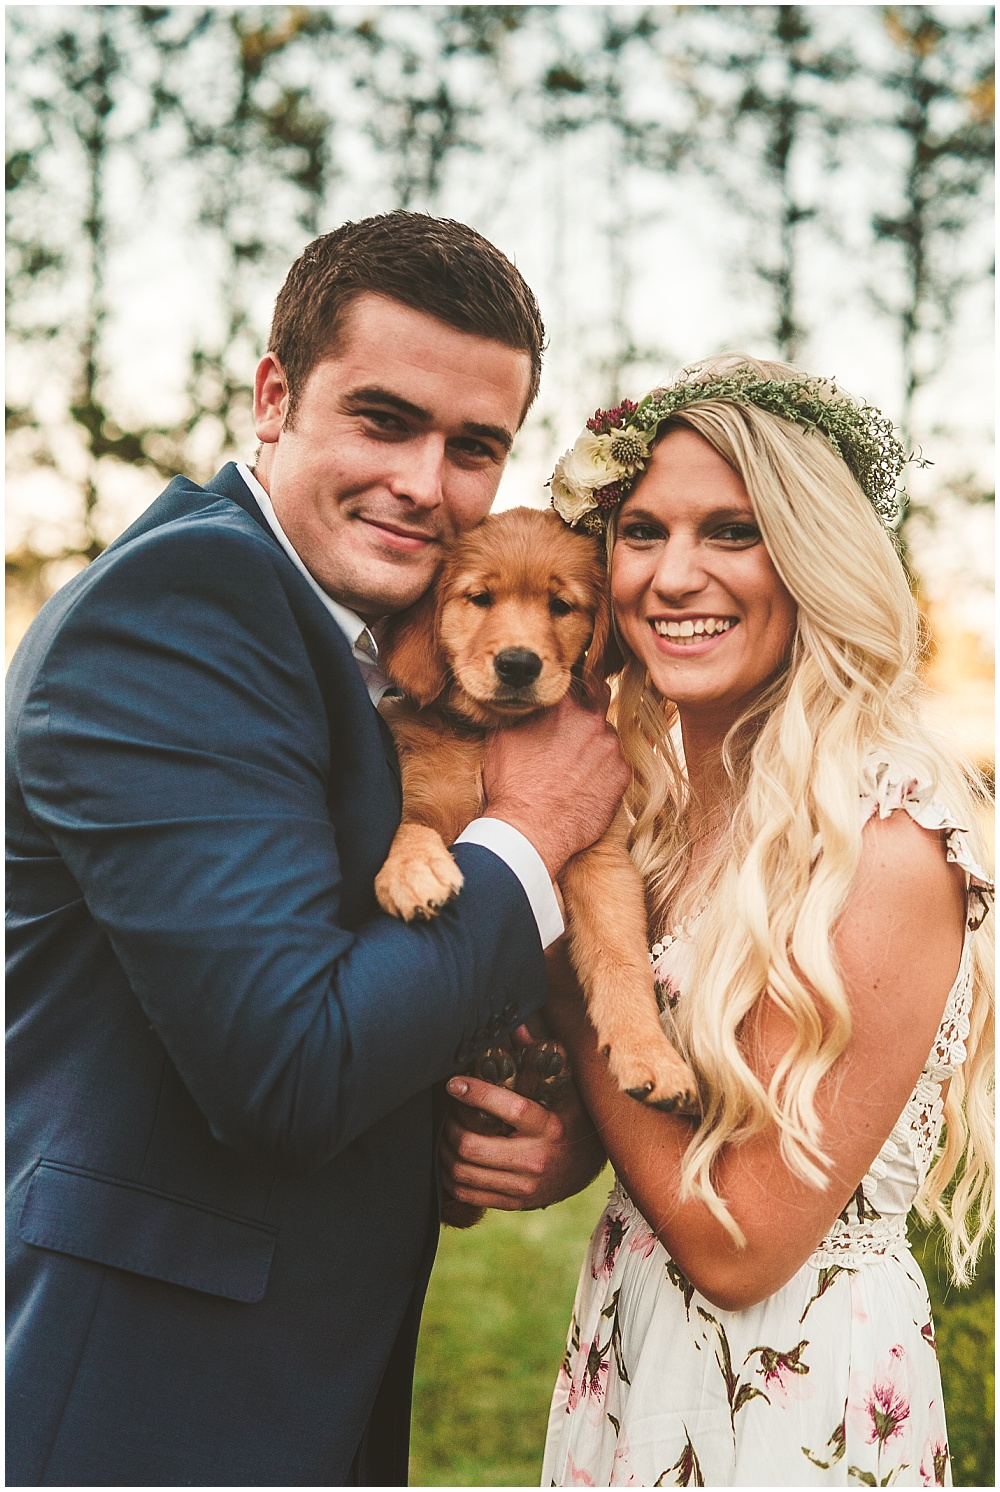 Fall golden hour engagement shoot with puppy | Alecio Photography